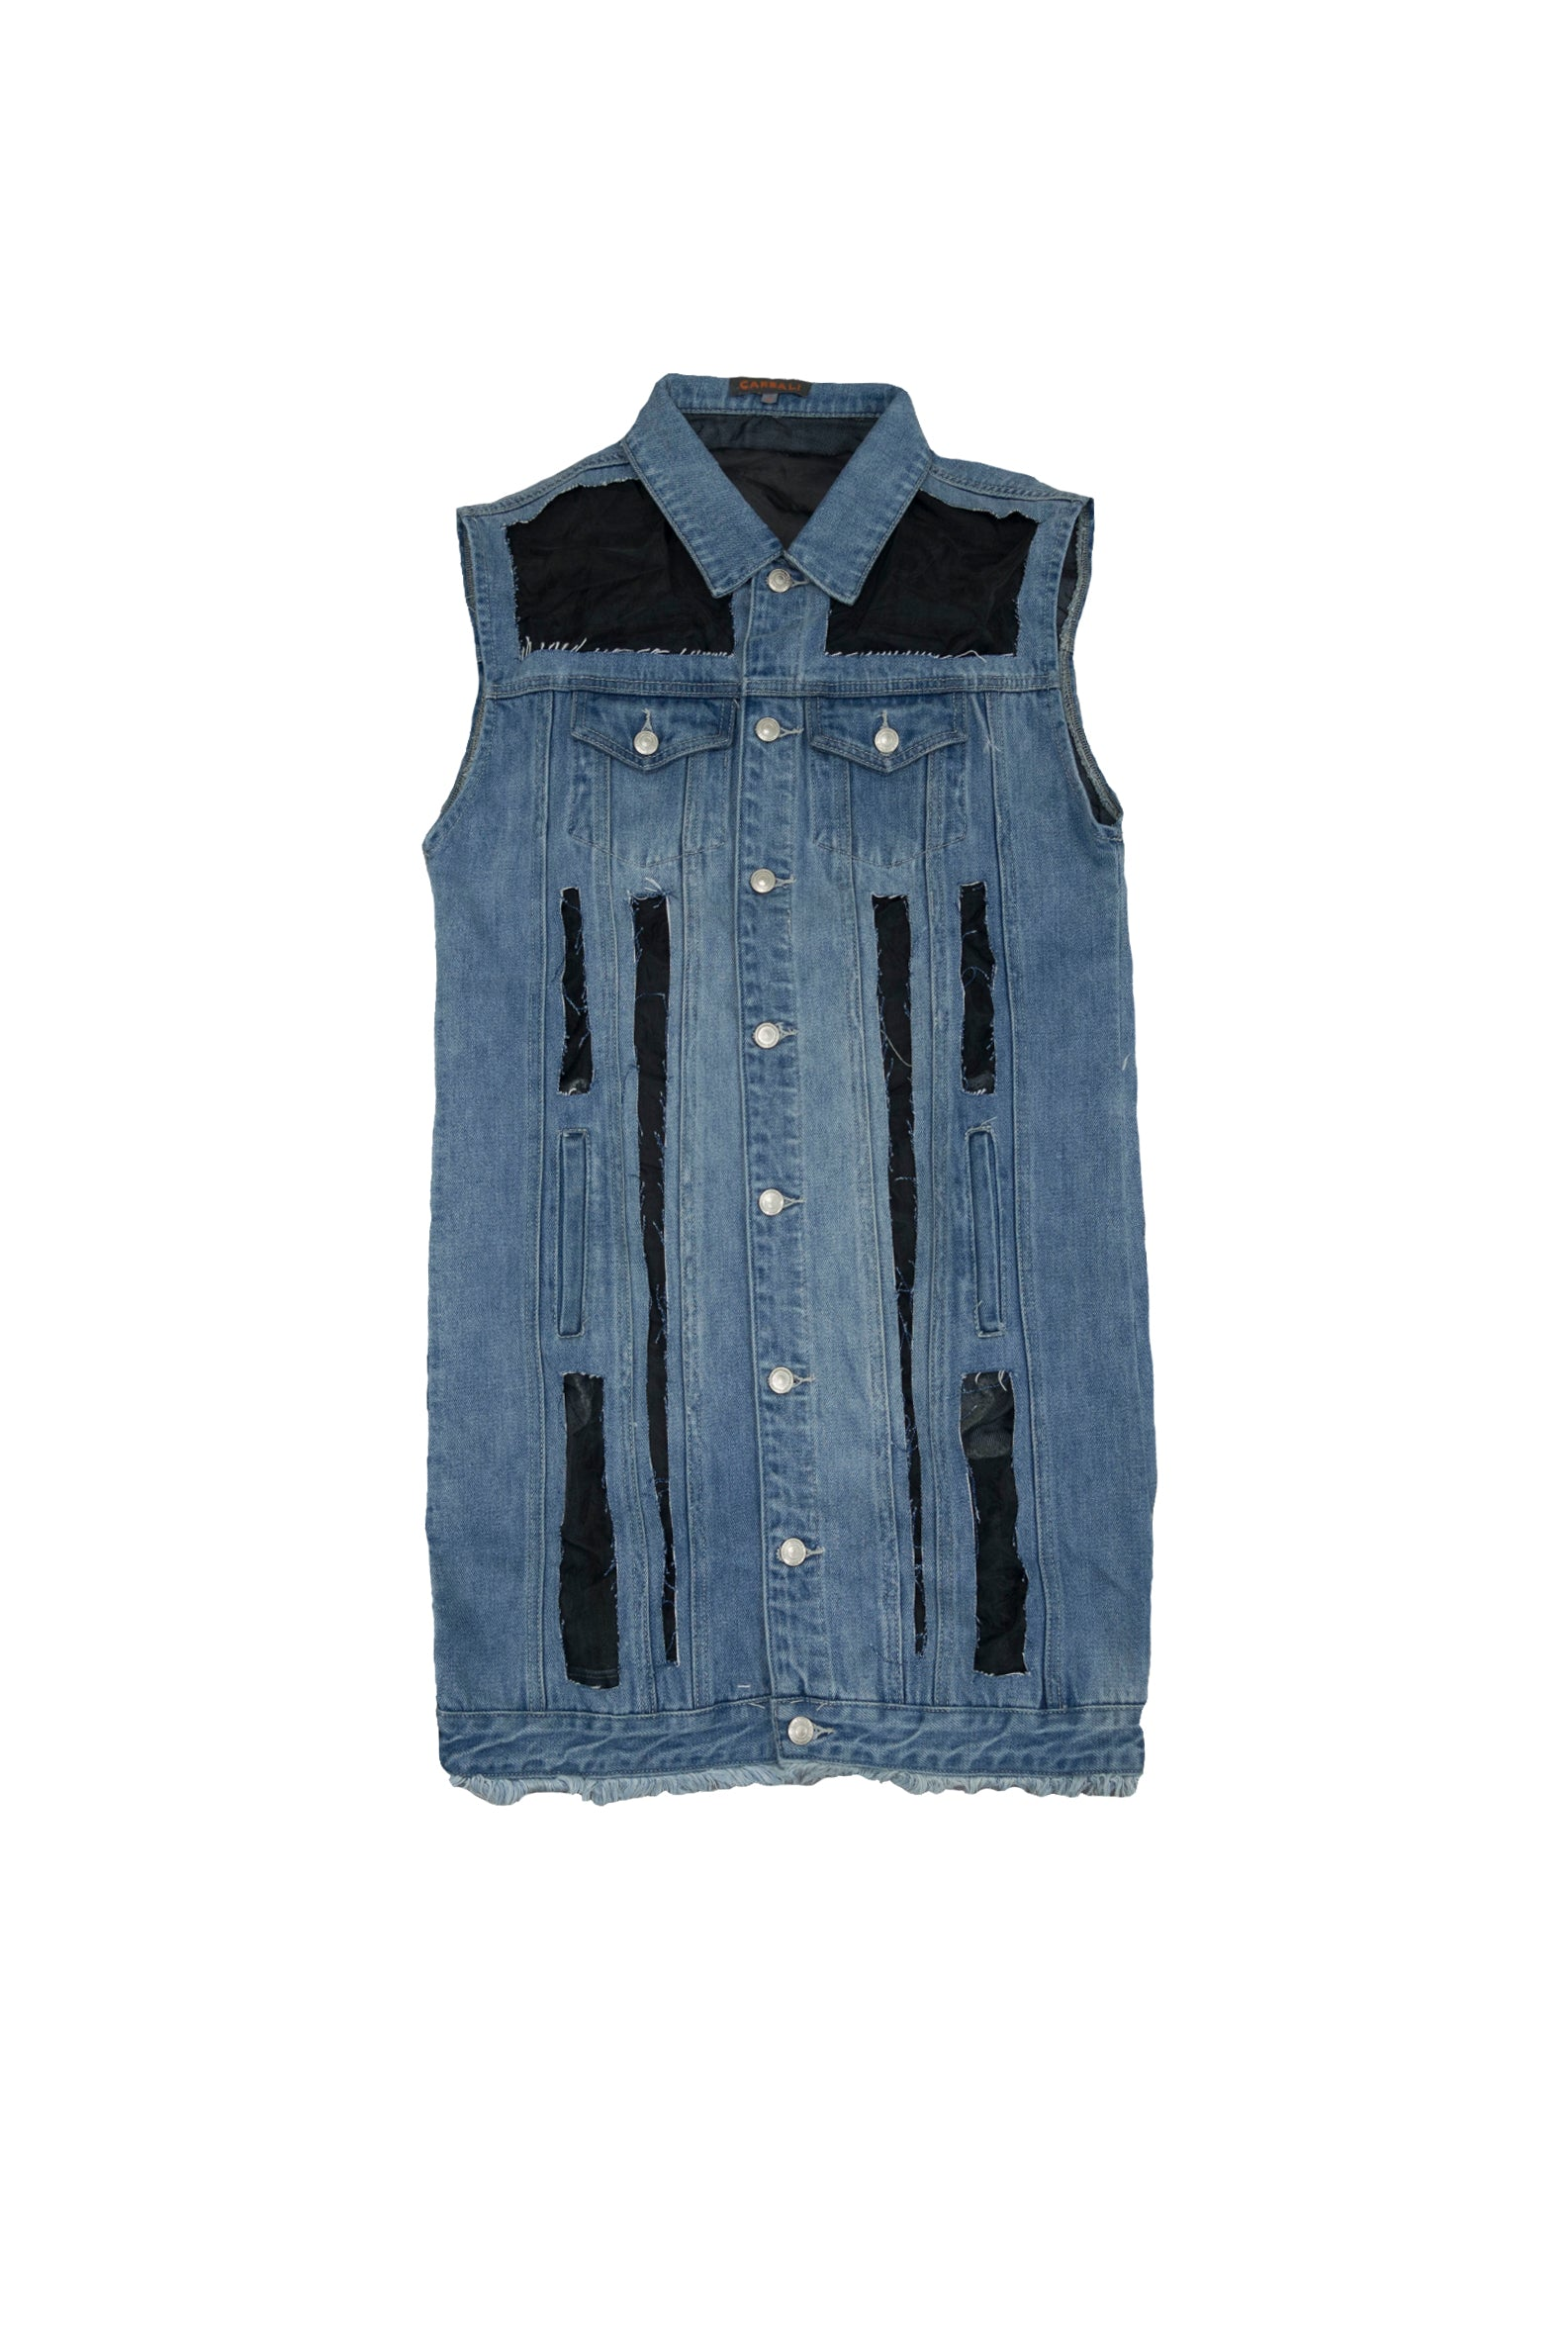 Fashion denim oversized fit sheer vest jacket